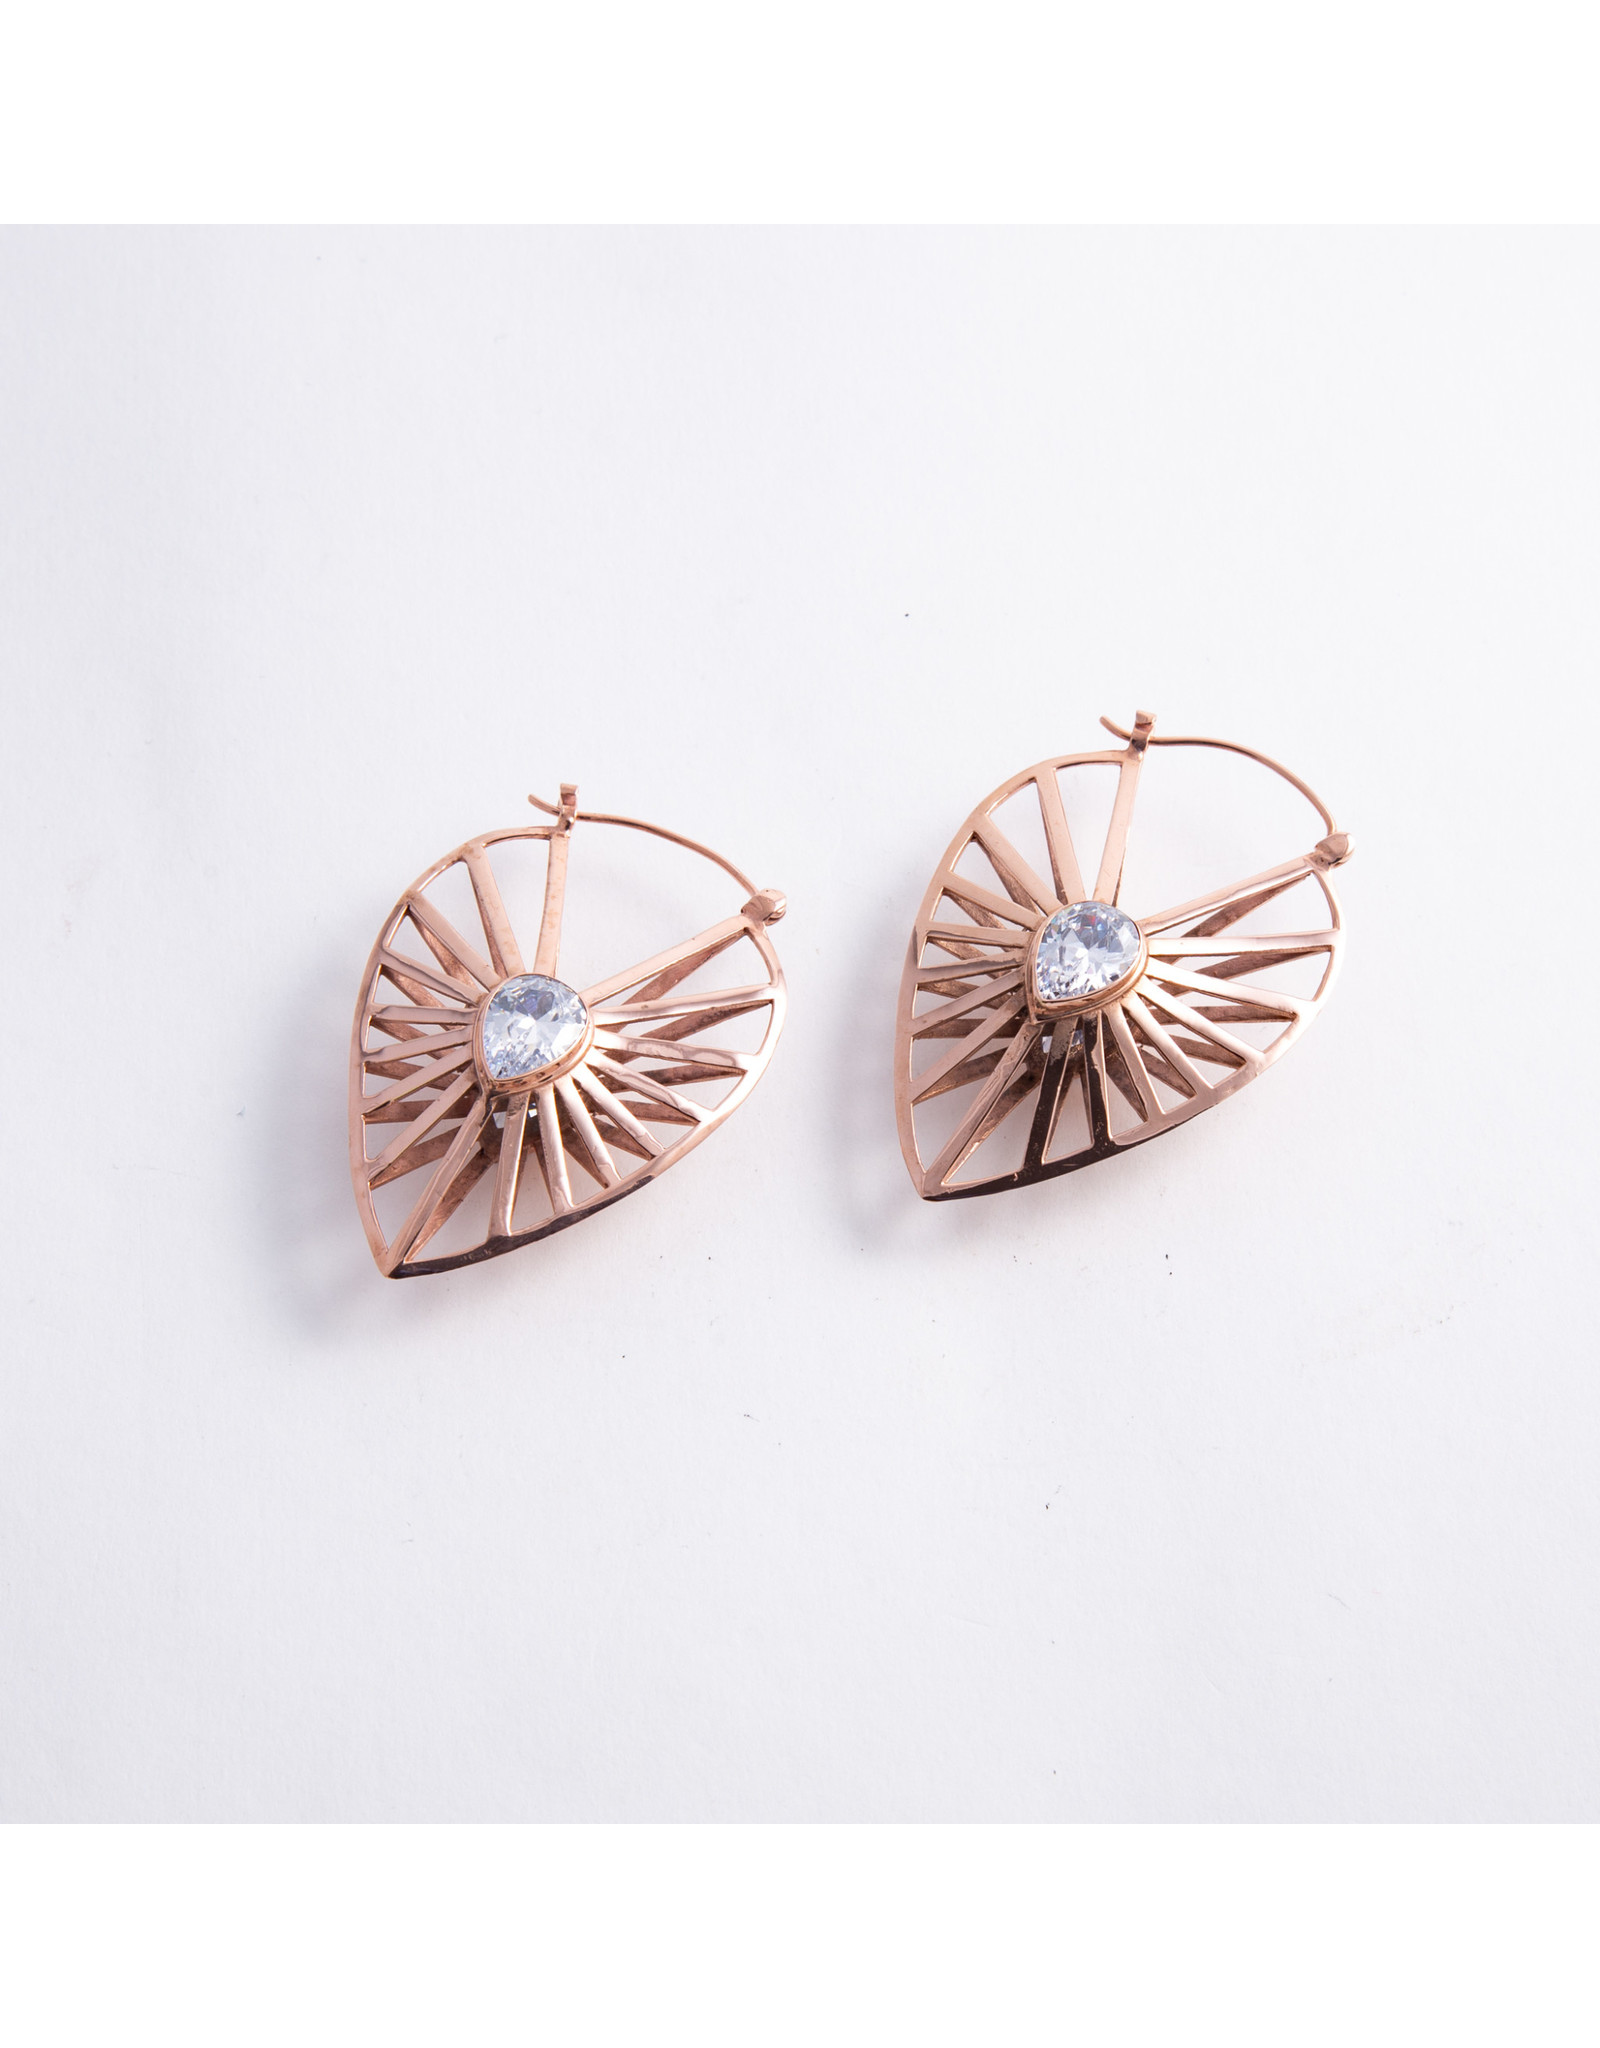 """Buddha Jewelry Organics Buddha Jewelry Organics rose gold plate """"Manifest"""" with CZ hanging design"""